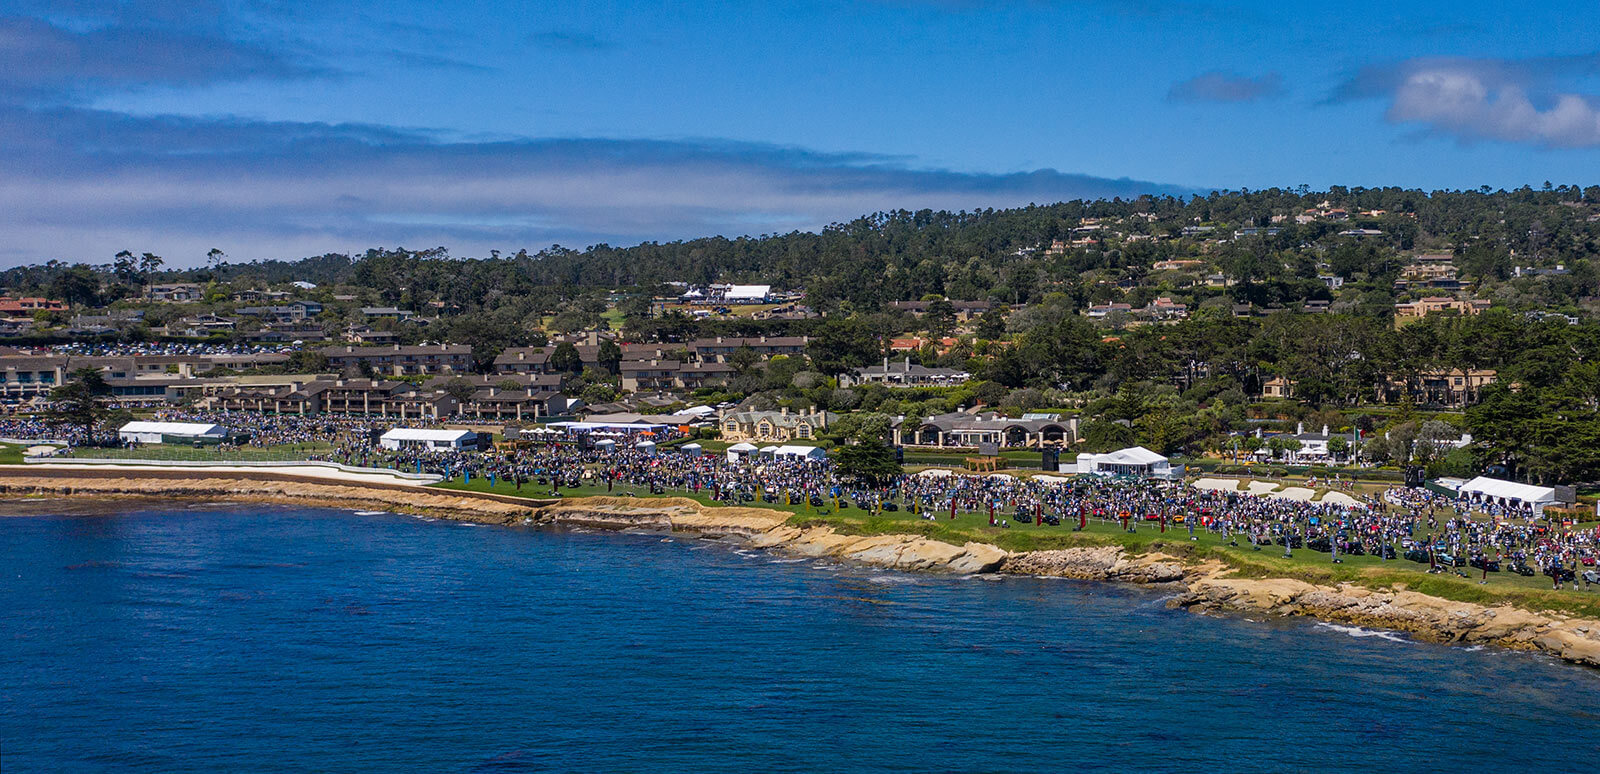 Overhead view of Pebble Beach Concours d'Elegance